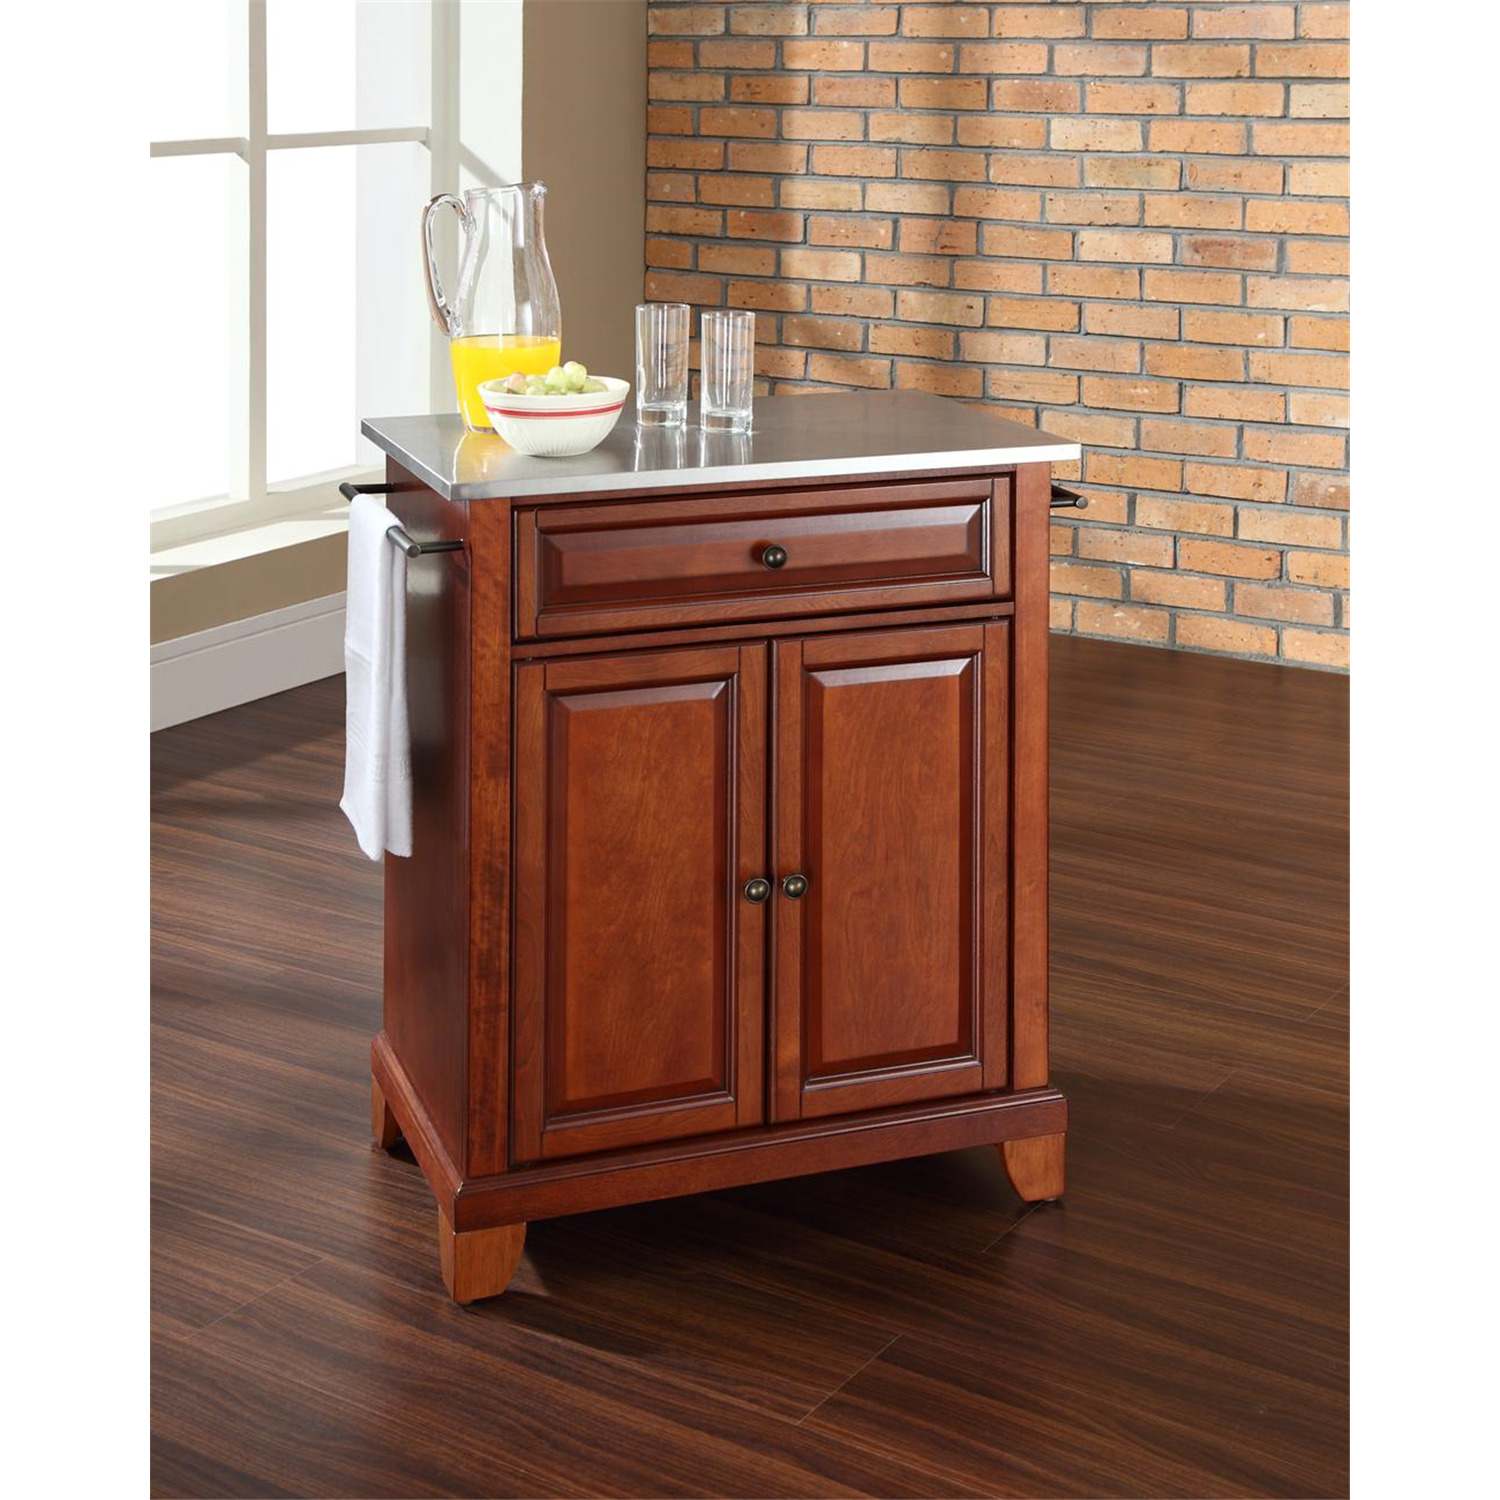 Crosley Newport Portable Kitchen Island By Oj Commerce. White Kitchen Floor Tile Ideas. Tile Wall Kitchen. 3 In 1 Kitchen Appliances. Kitchen Ideas White Appliances. Kitchen Island With Cooktop. Kitchen And Home Appliances. Kitchen Over Sink Lighting. Kitchen Island Decor